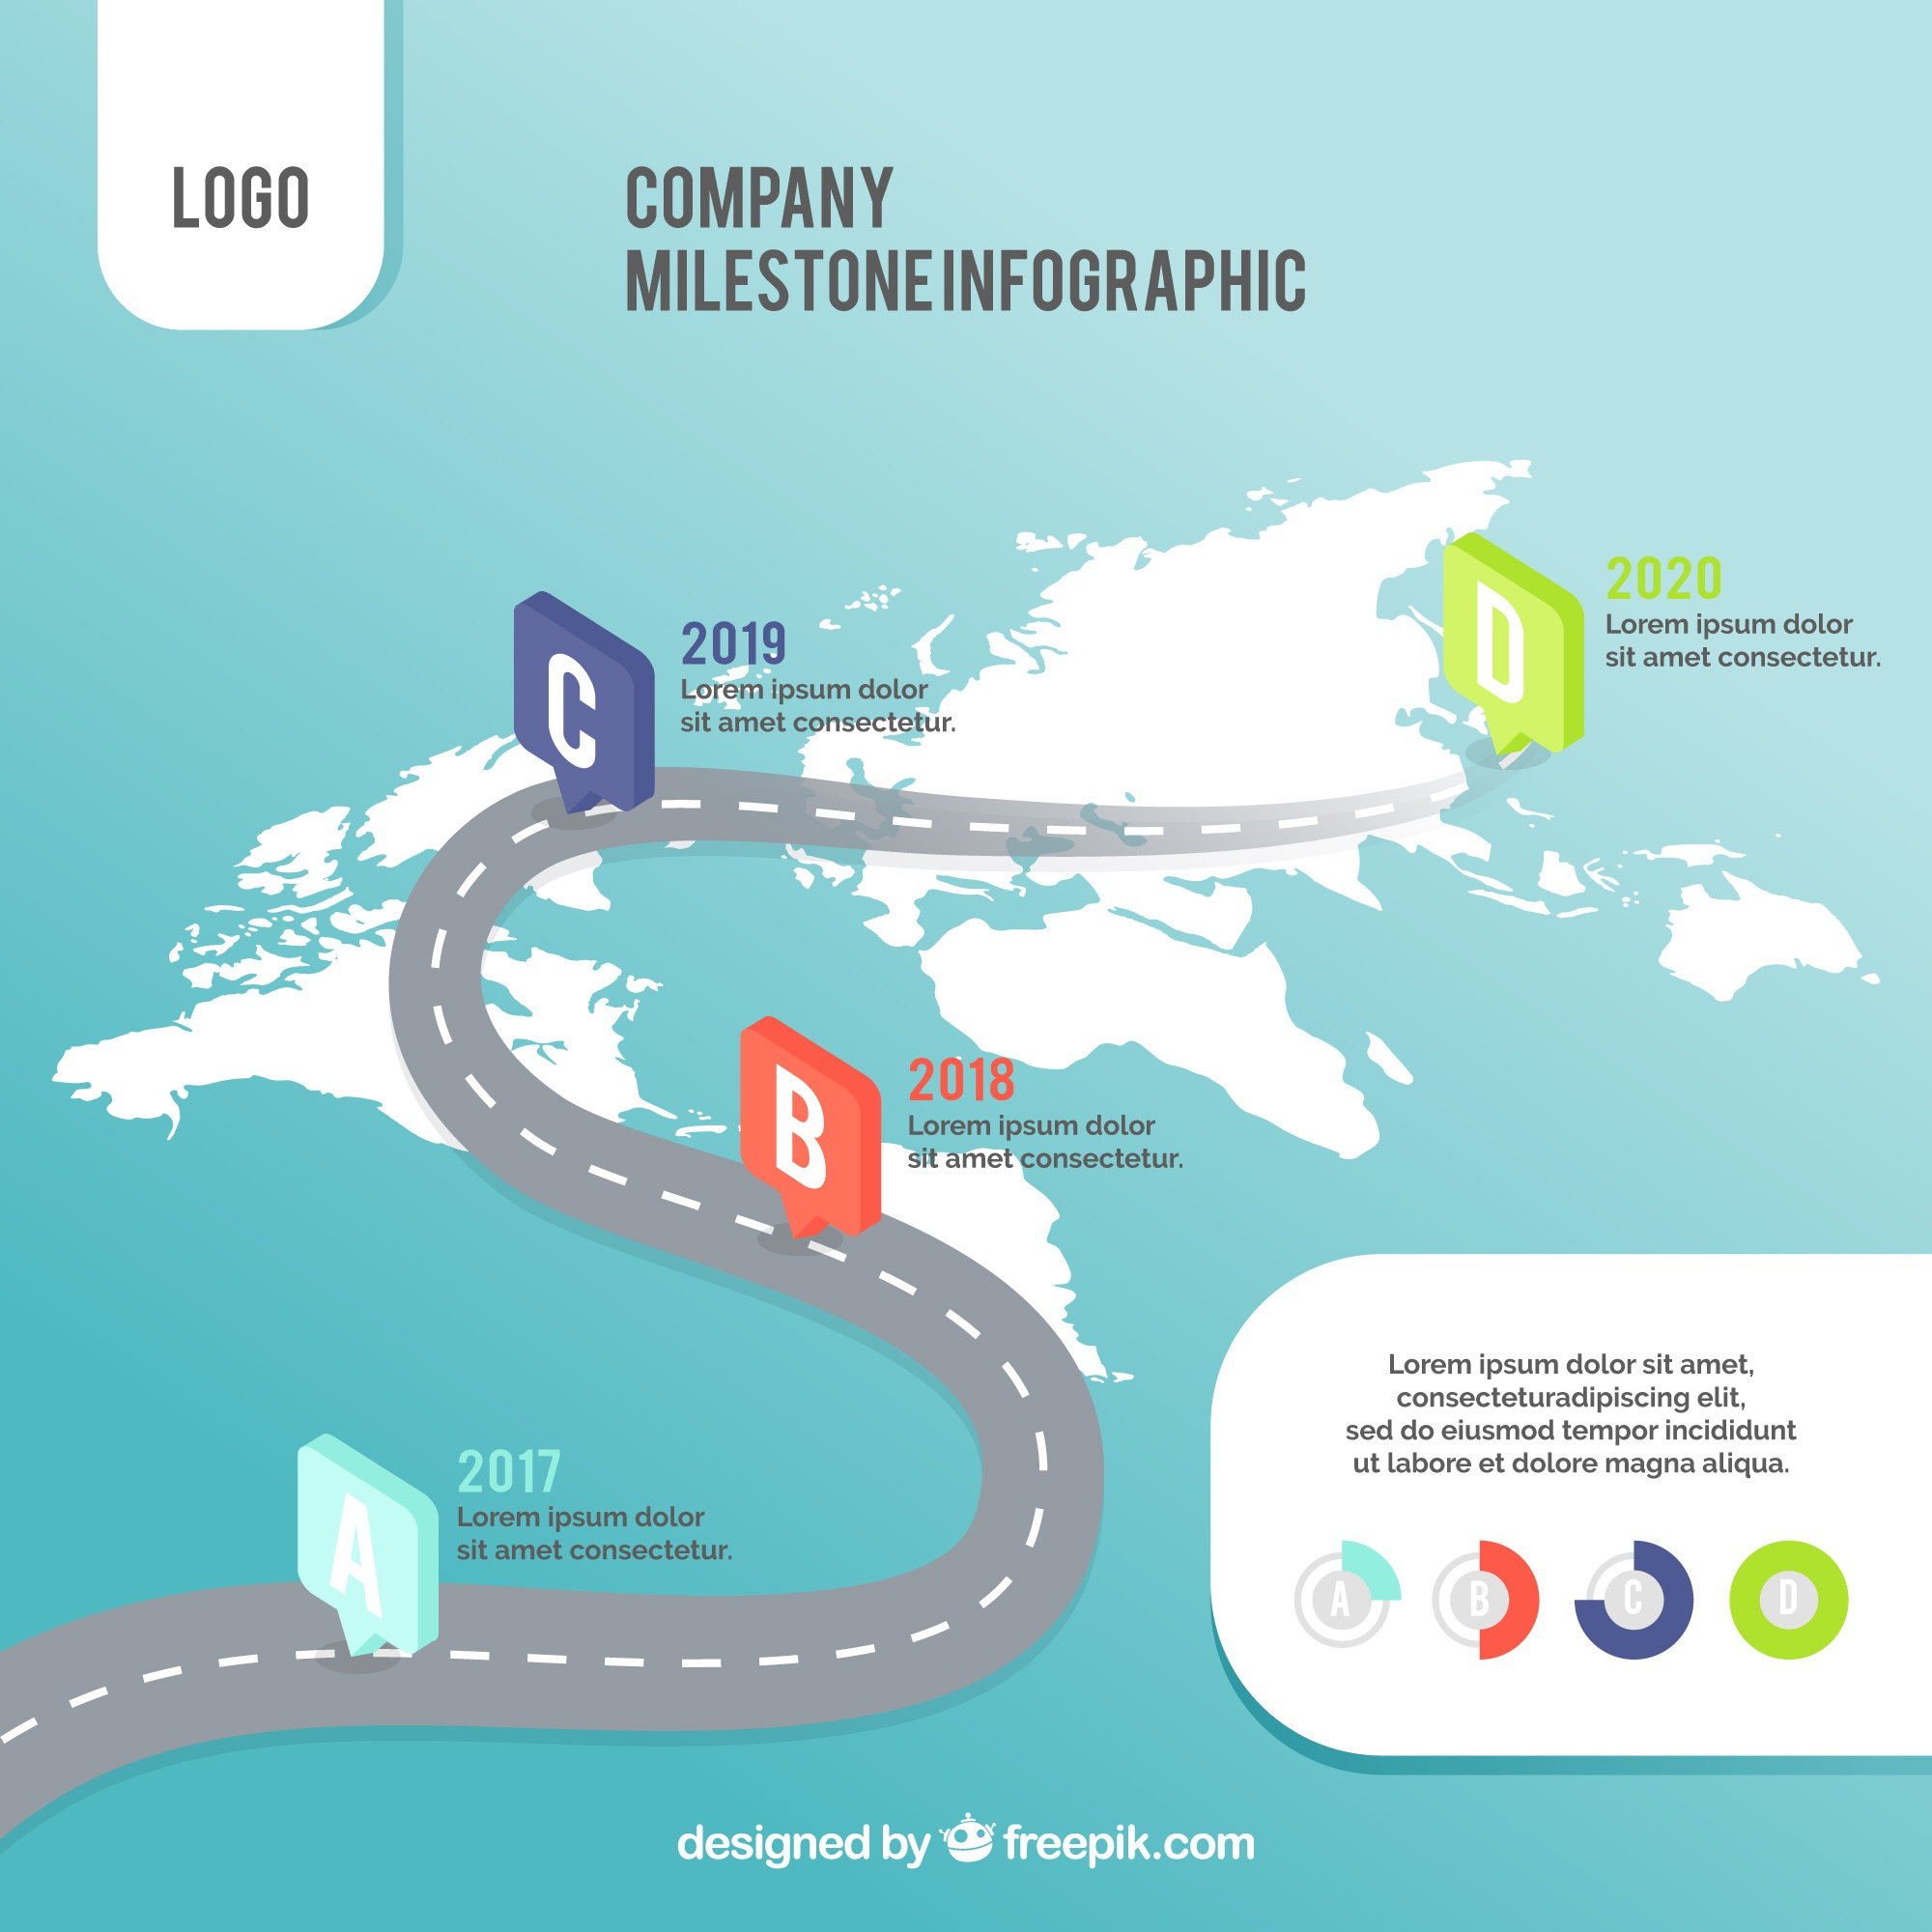 Company infographic with world map